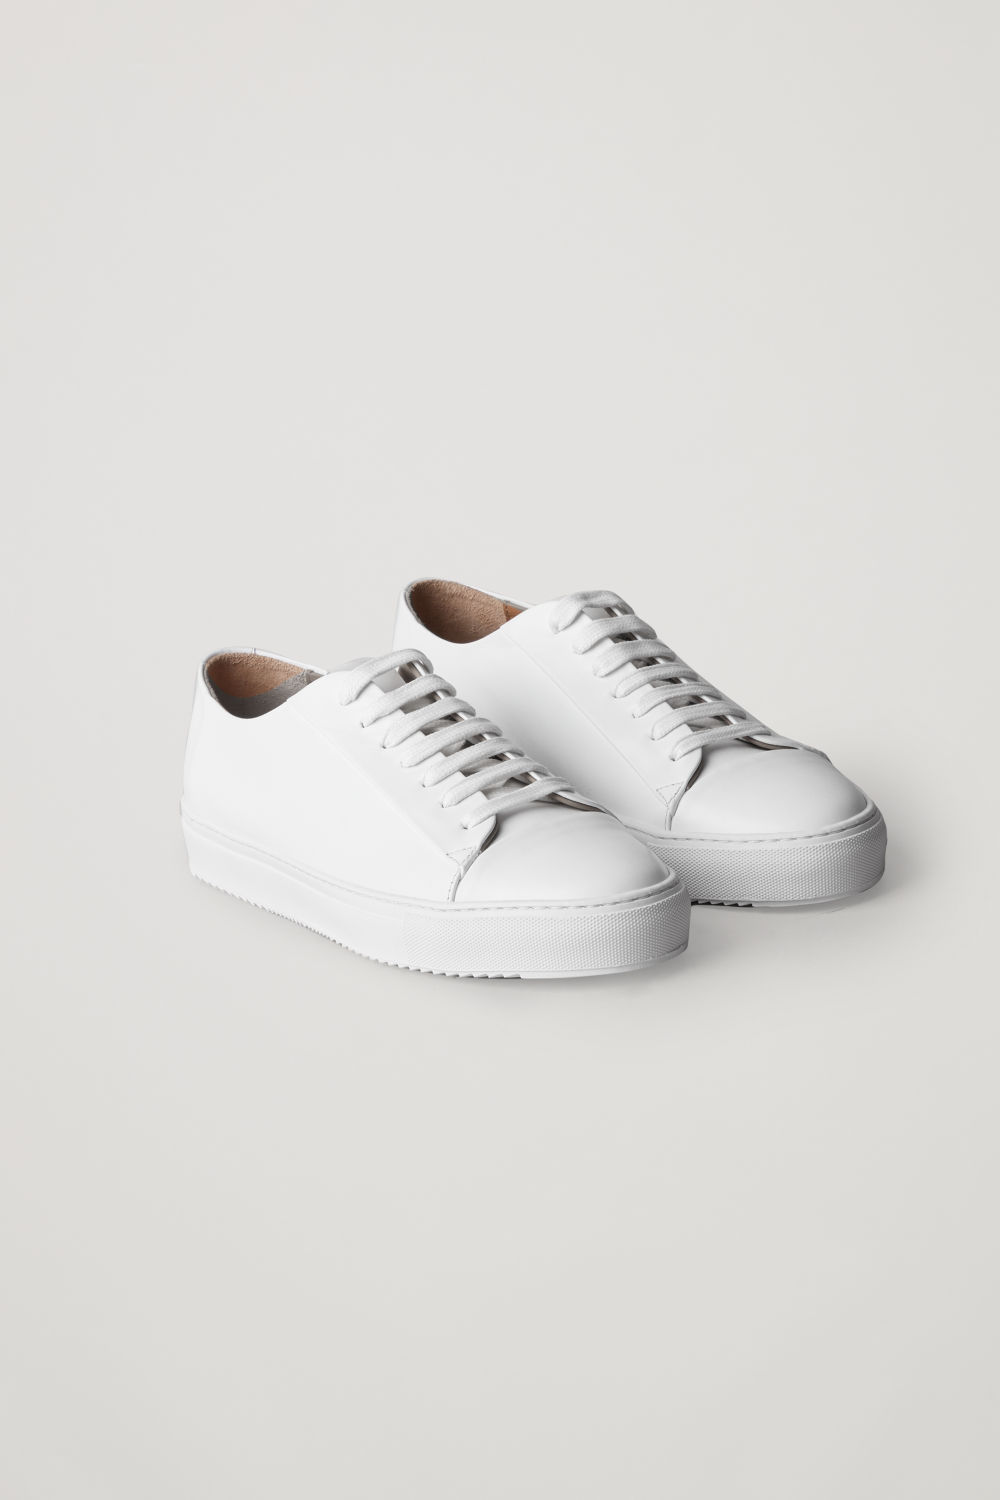 THICK-SOLED LEATHER SNEAKERS